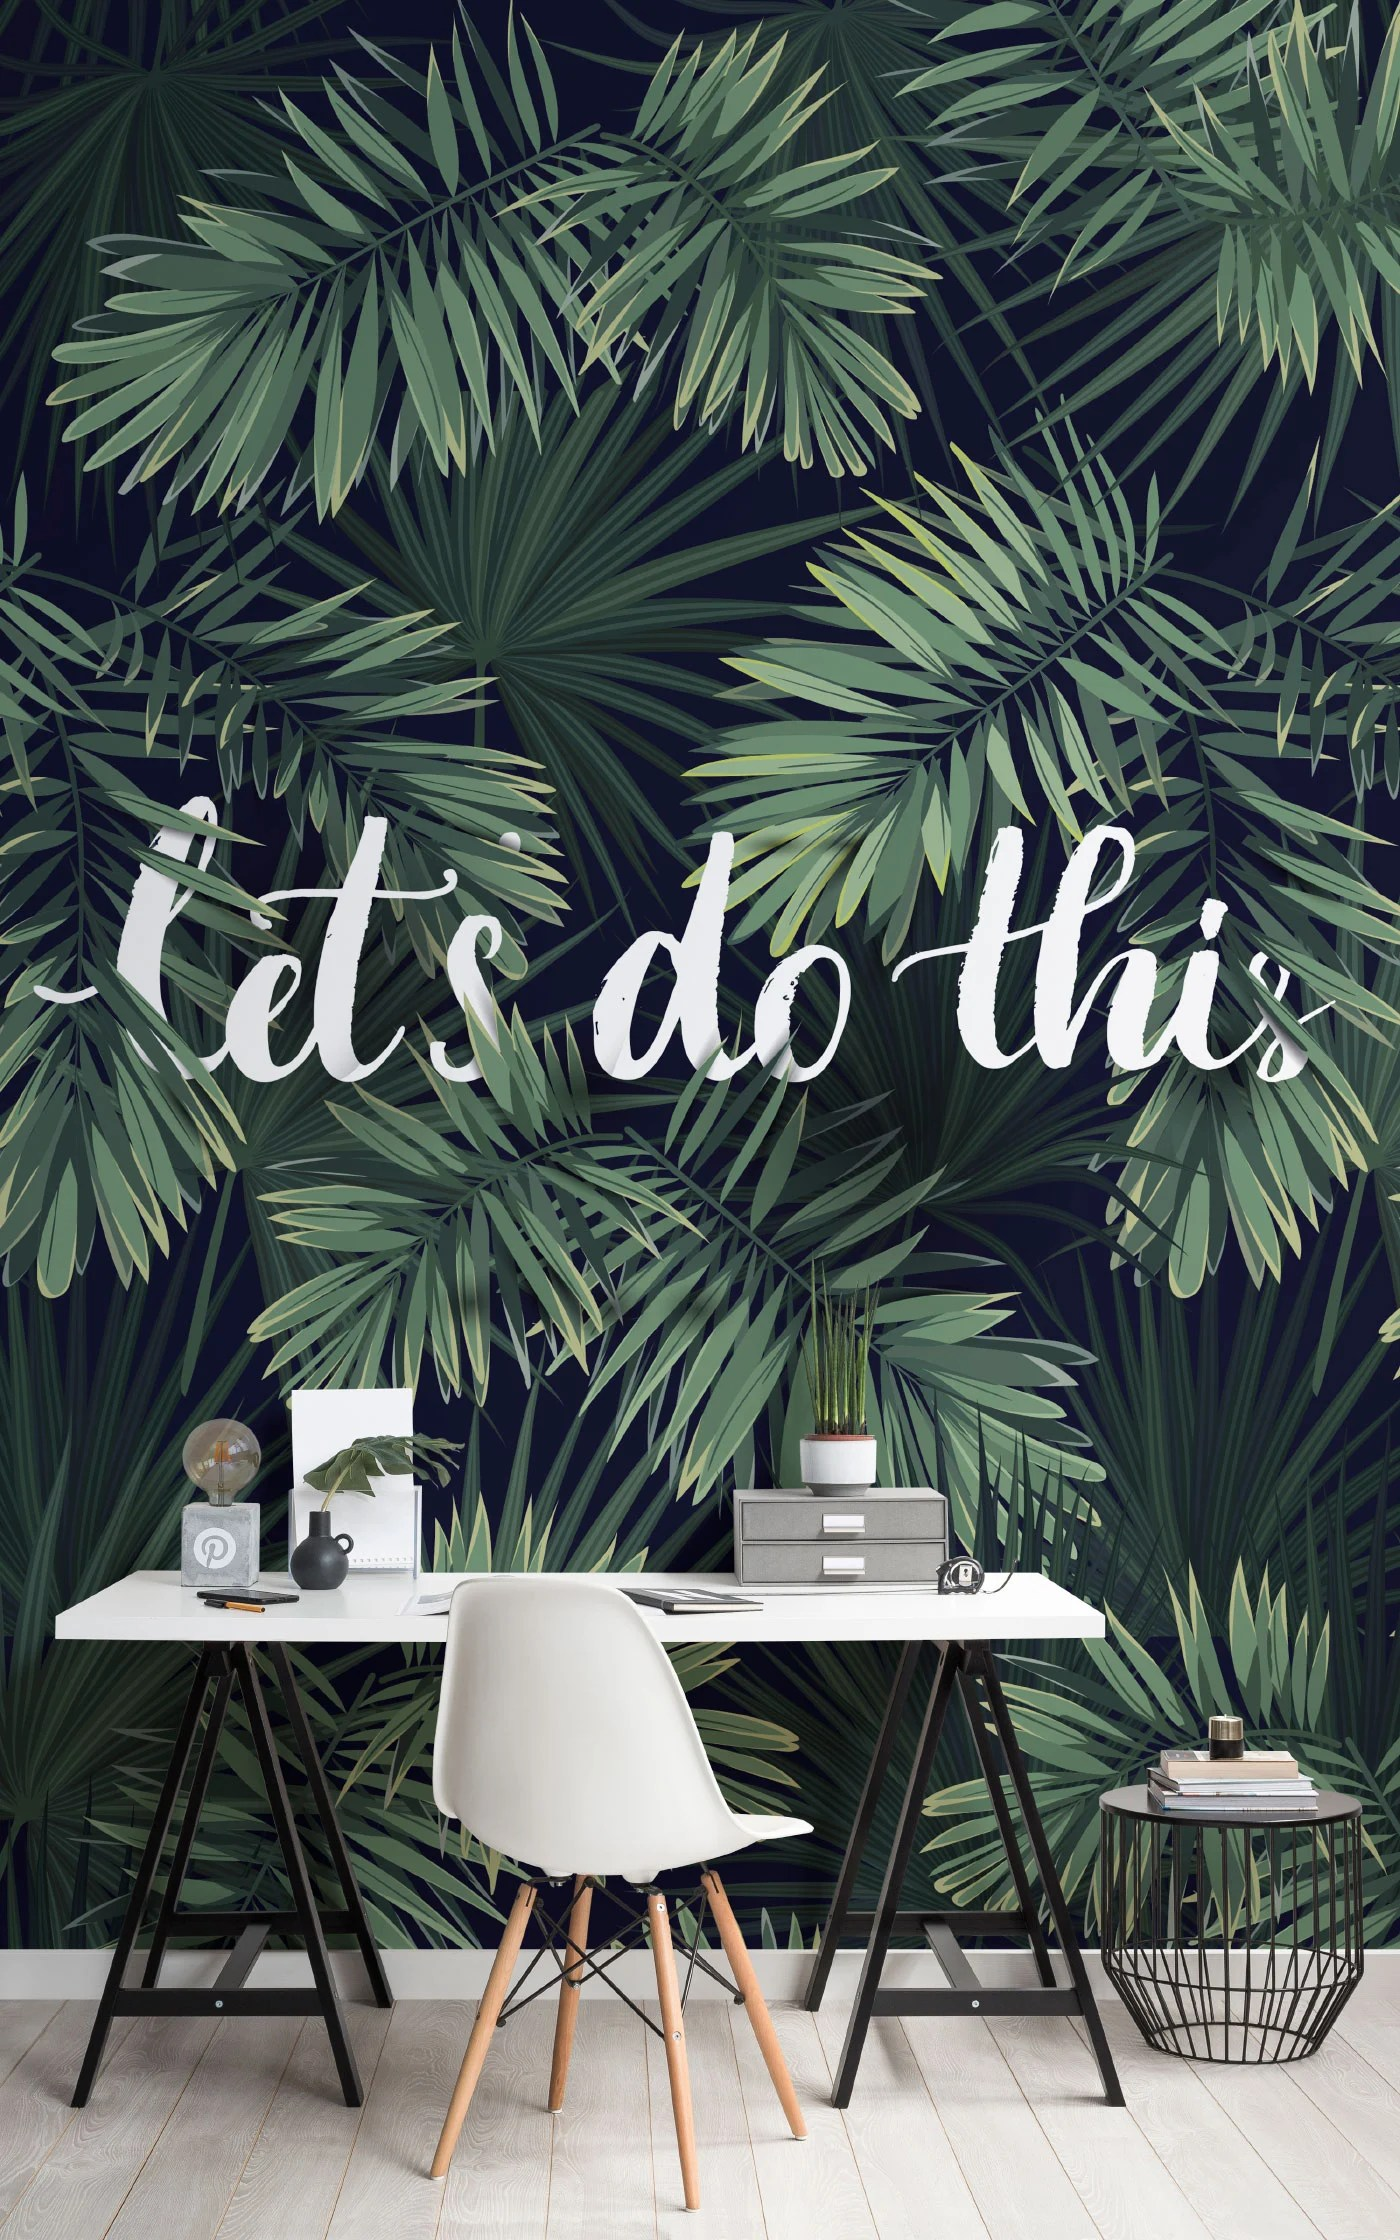 Marble Wallpaper With Quotes For Desktop Achieve A Powerful Yet Glamorous Office Space With These